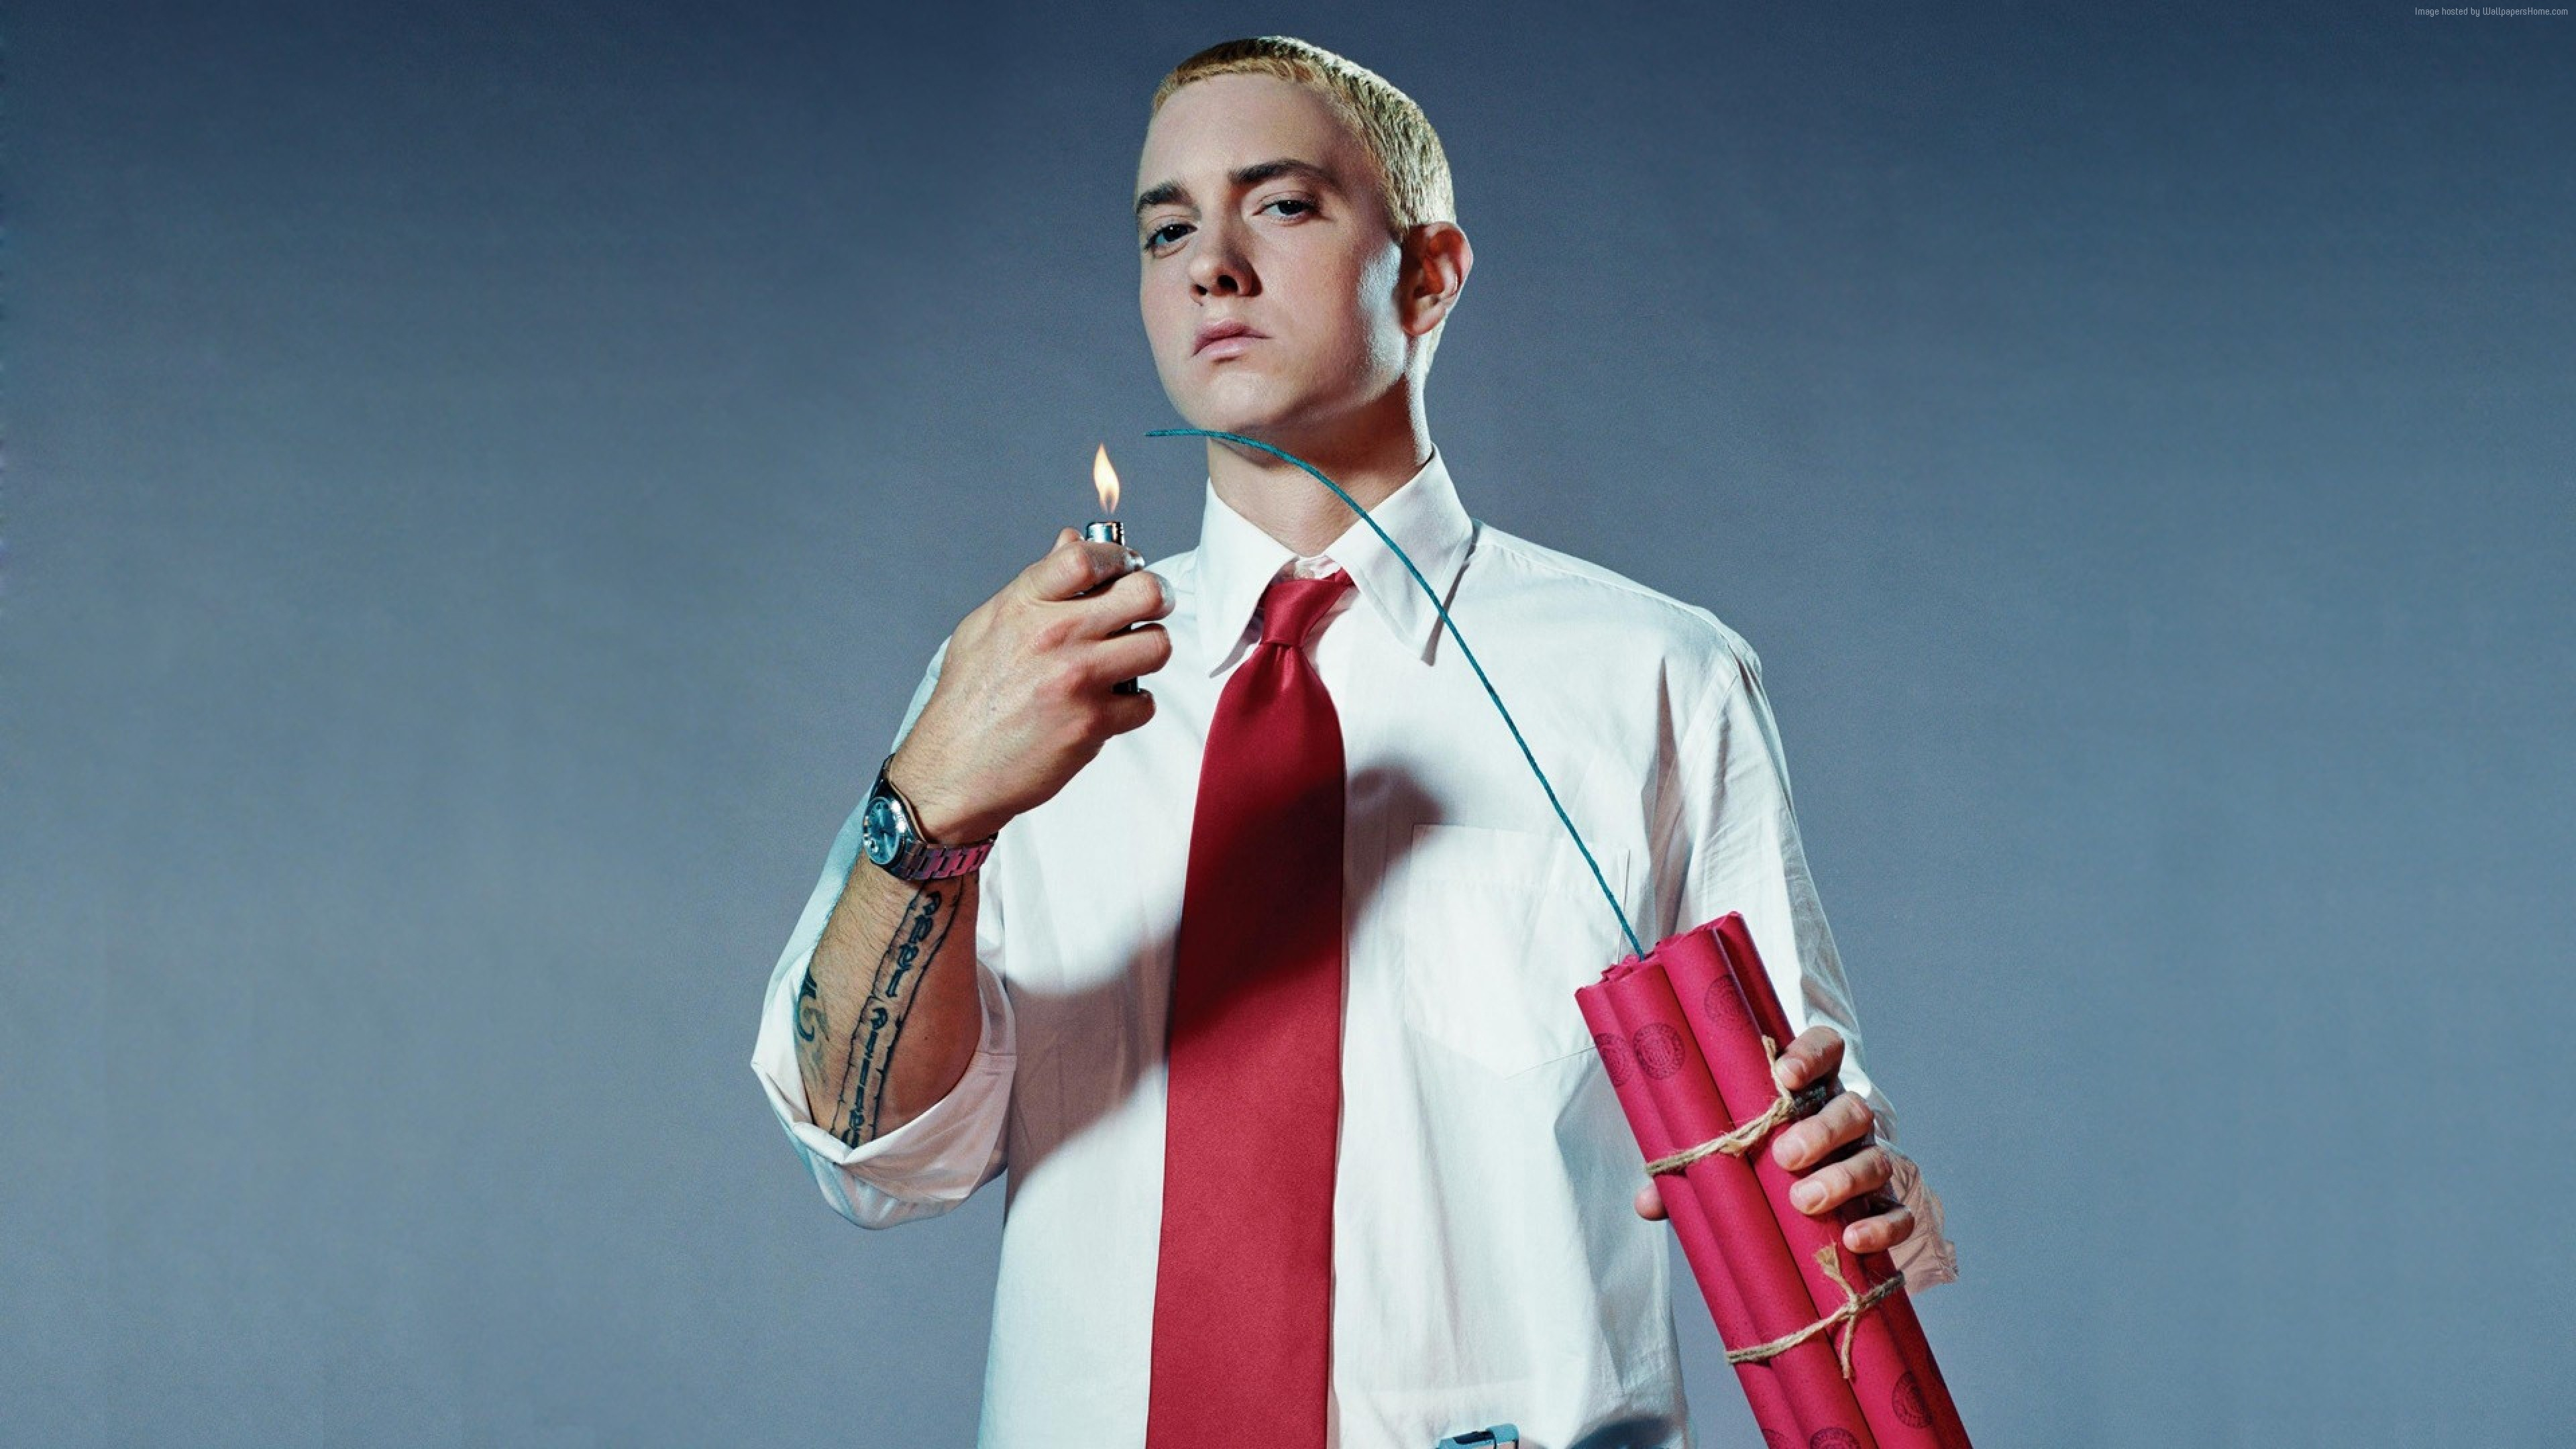 Wallpaper Eminem, singer, rapper, actor, 4K, Celebrities